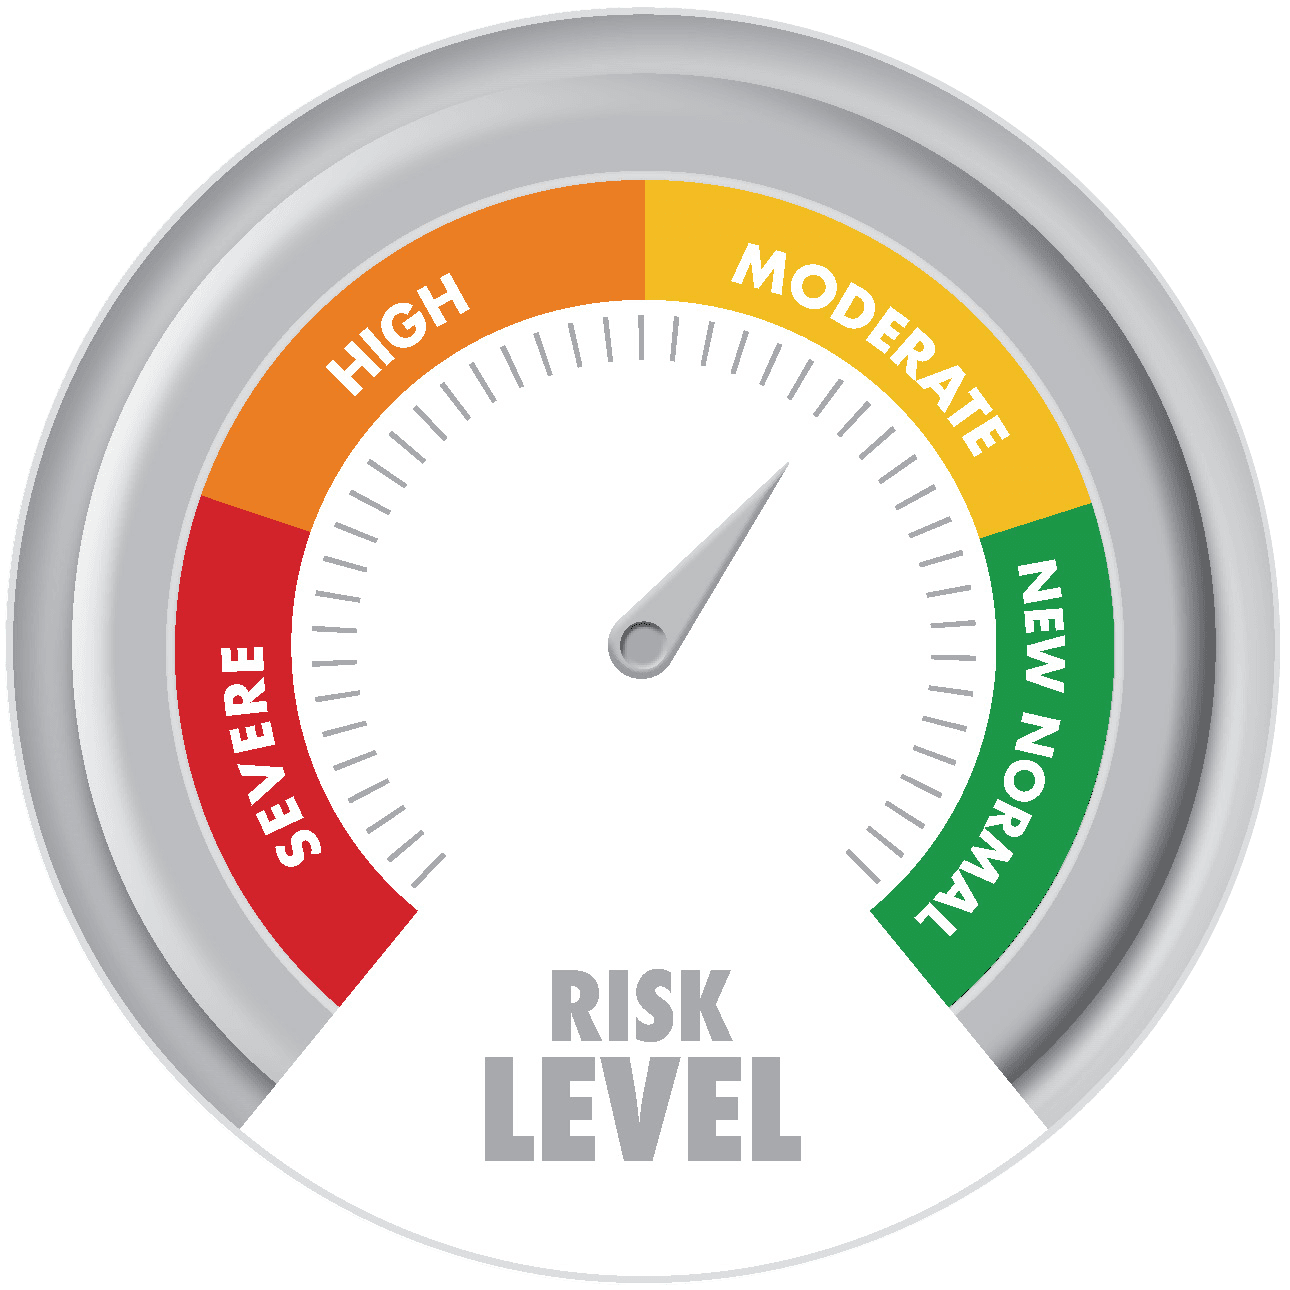 Risk Meter Phases - Moderate